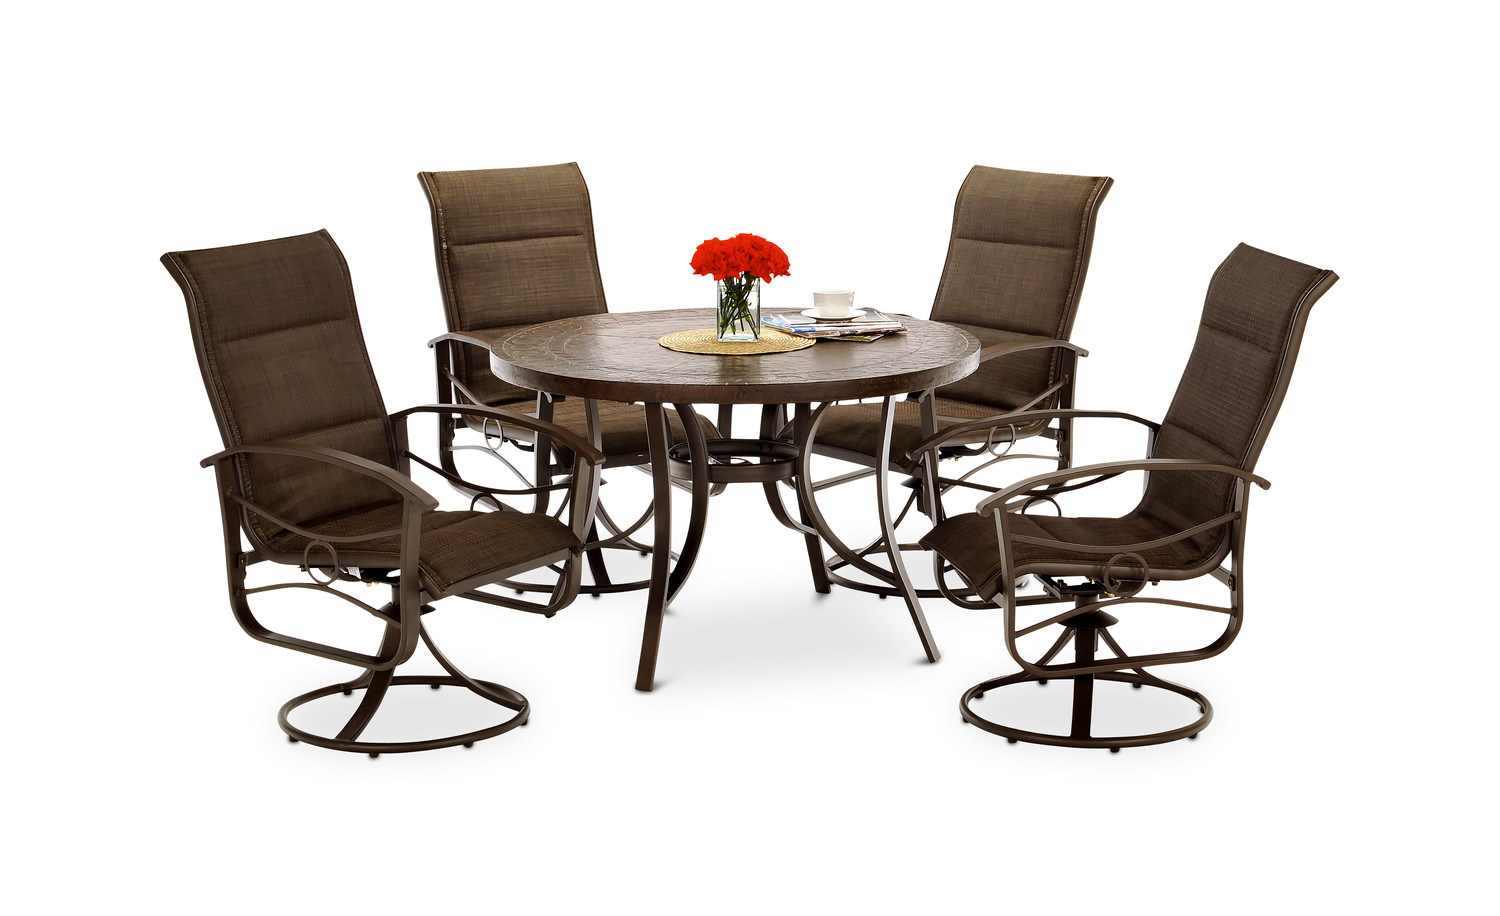 Callaway III 5 Piece Patio Dining Set by Furniture Creations ...